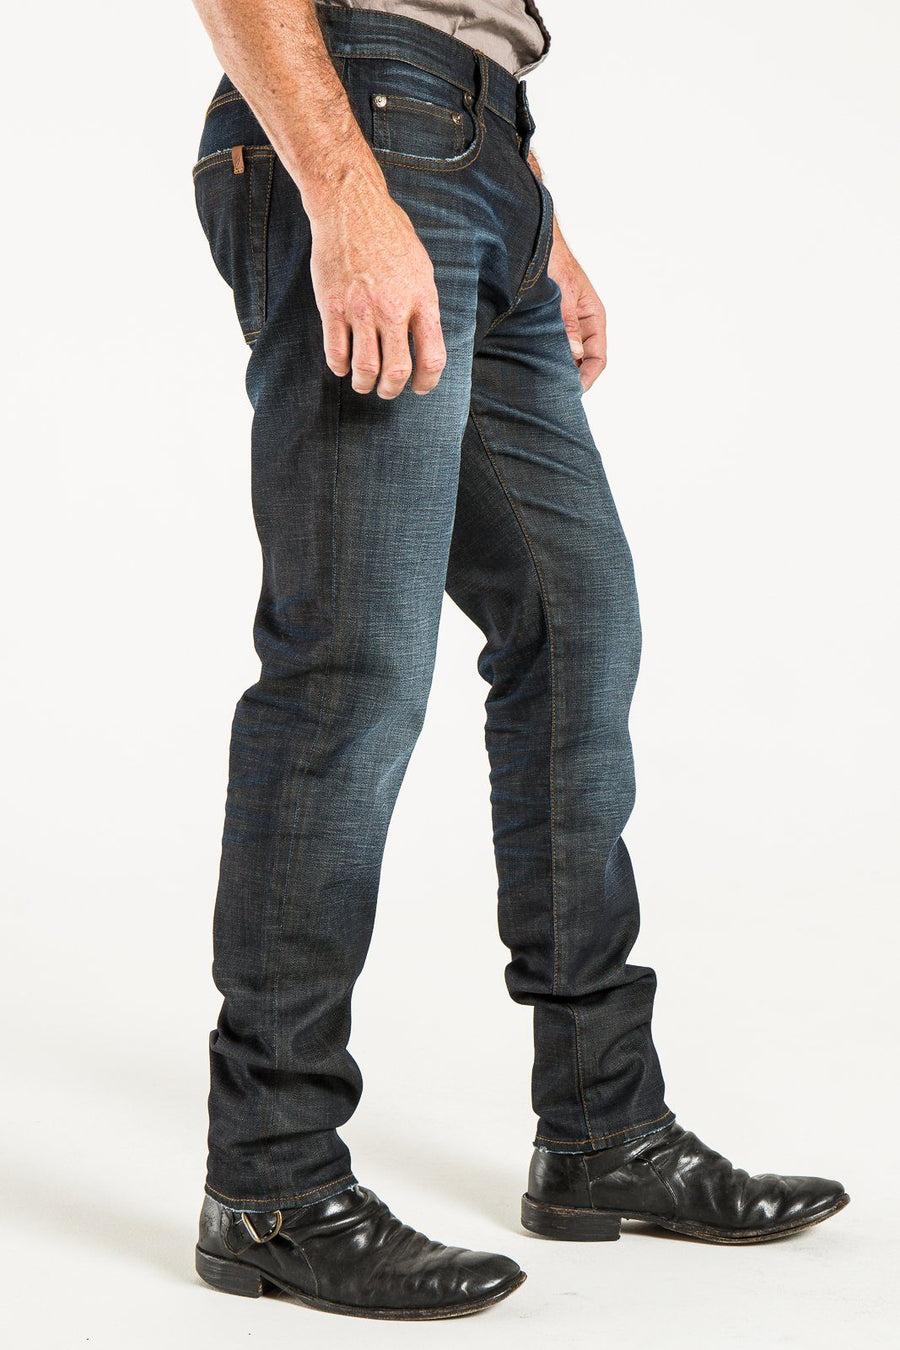 RIGGINS TAPER IN TIMBER DENIM